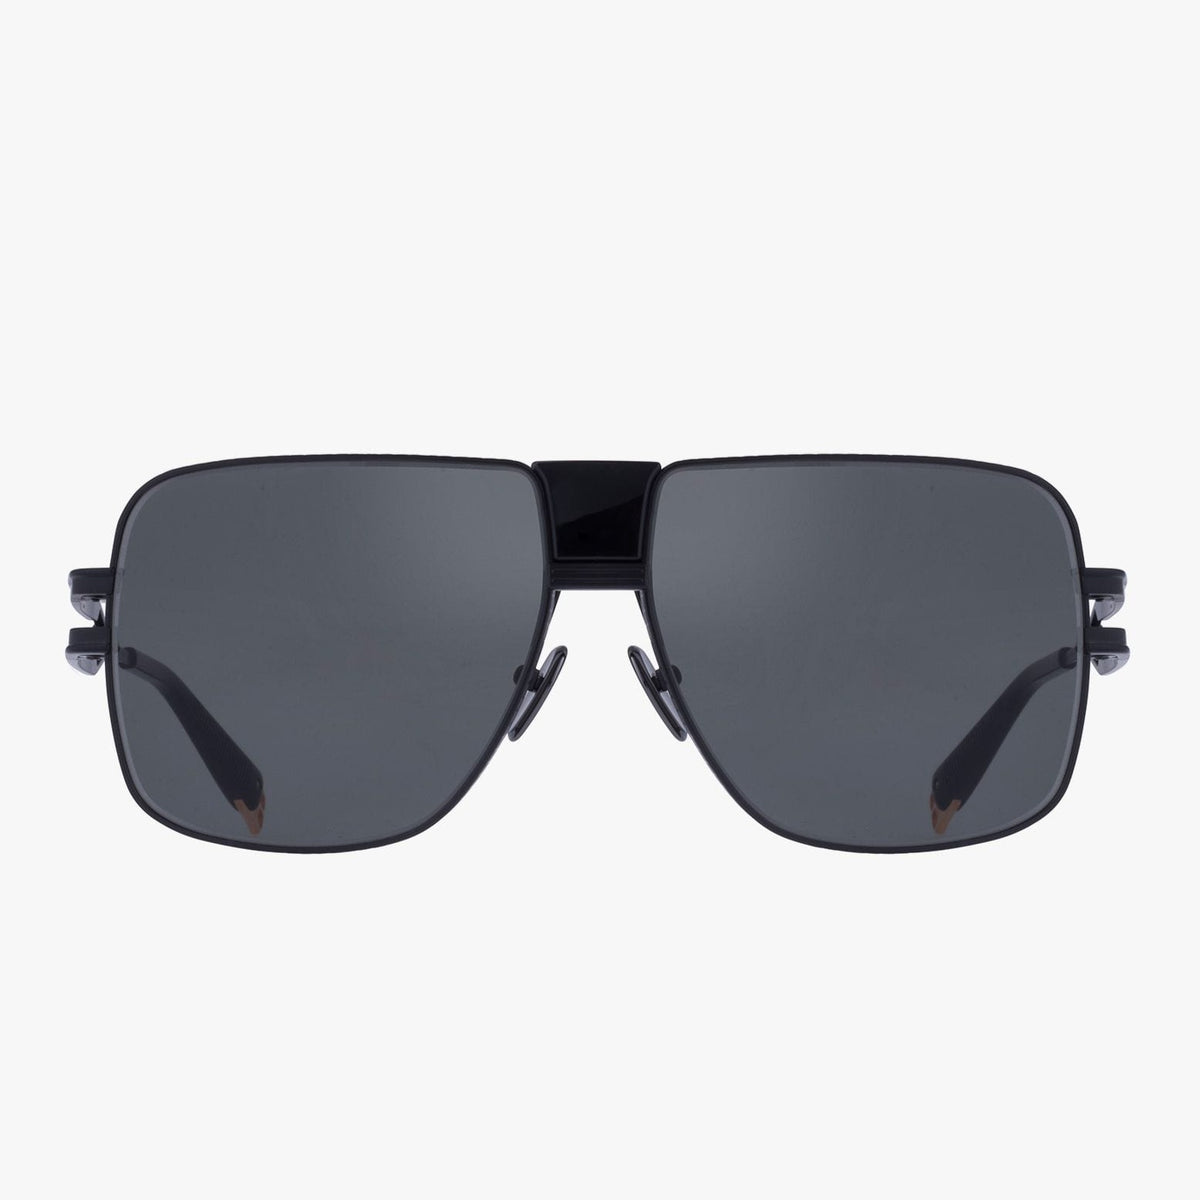 Balmain Unisex Matte Black Metal 1914 Sunglasses